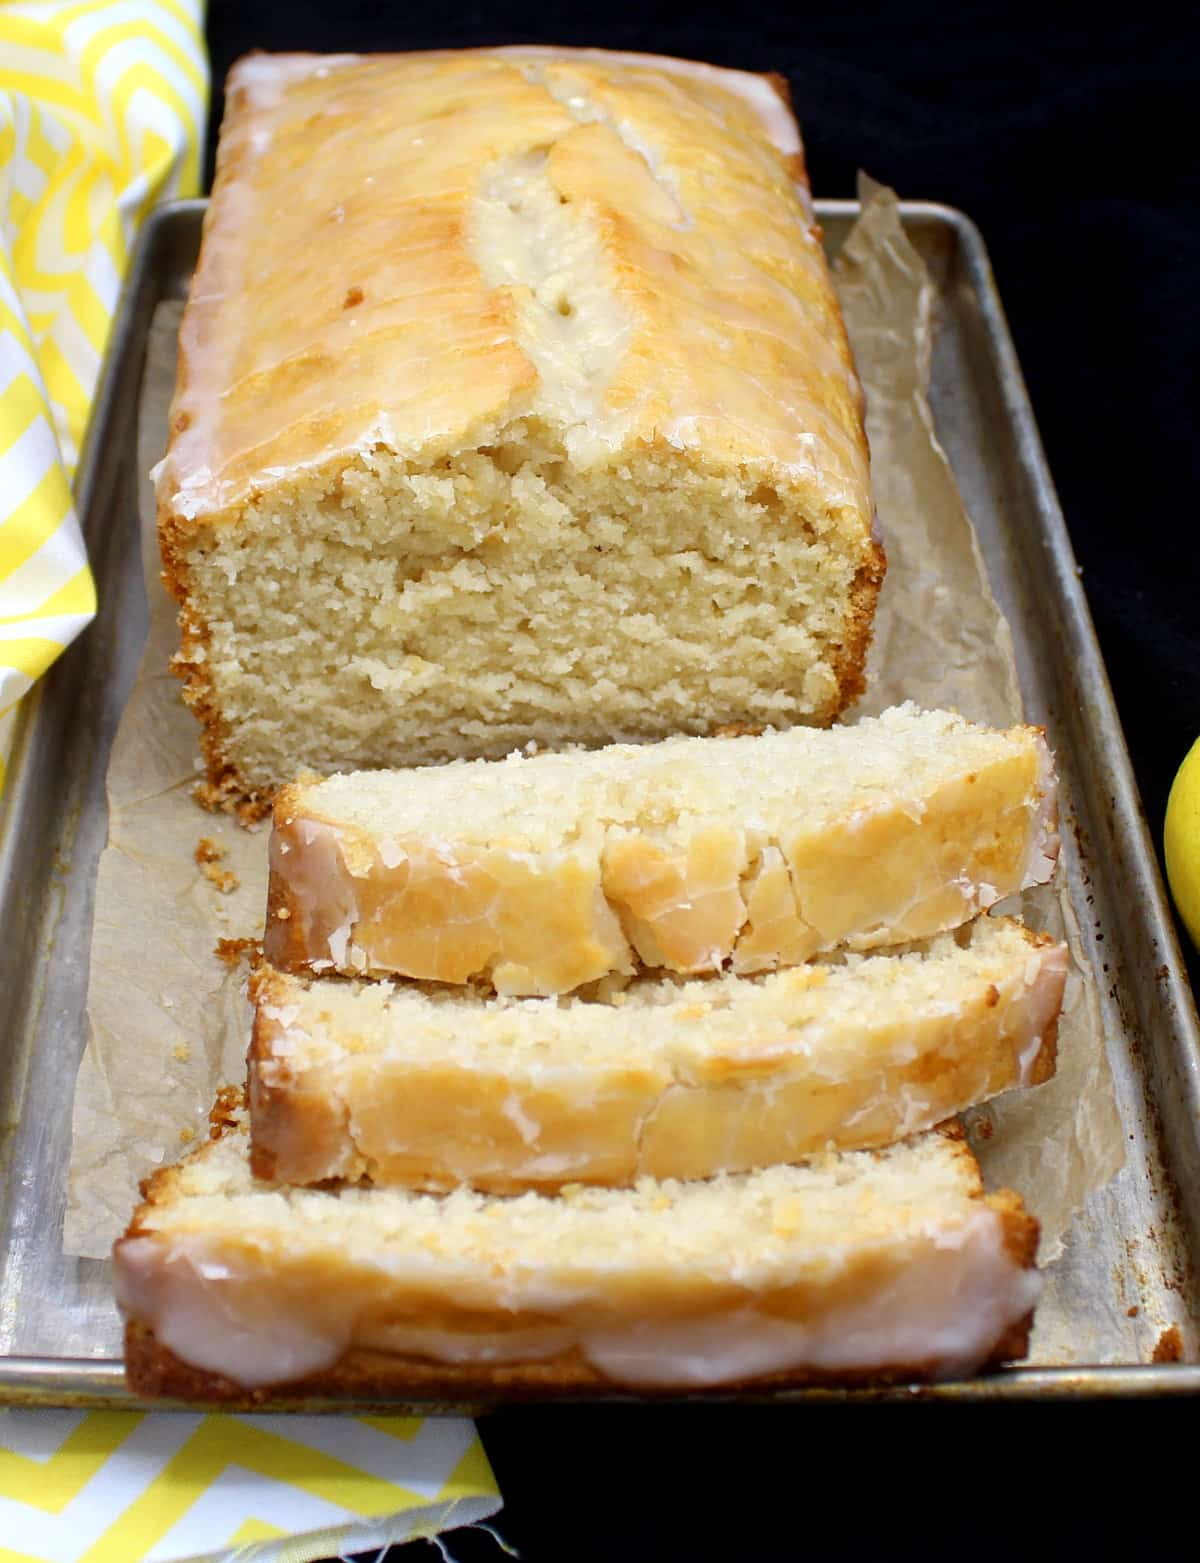 A loaf of buttery vegan lemon pound cake on a metal baking tray with slices cut in front of it and showing the dense, soft crumb. Next to it are lemons and a yellow and white napkin.